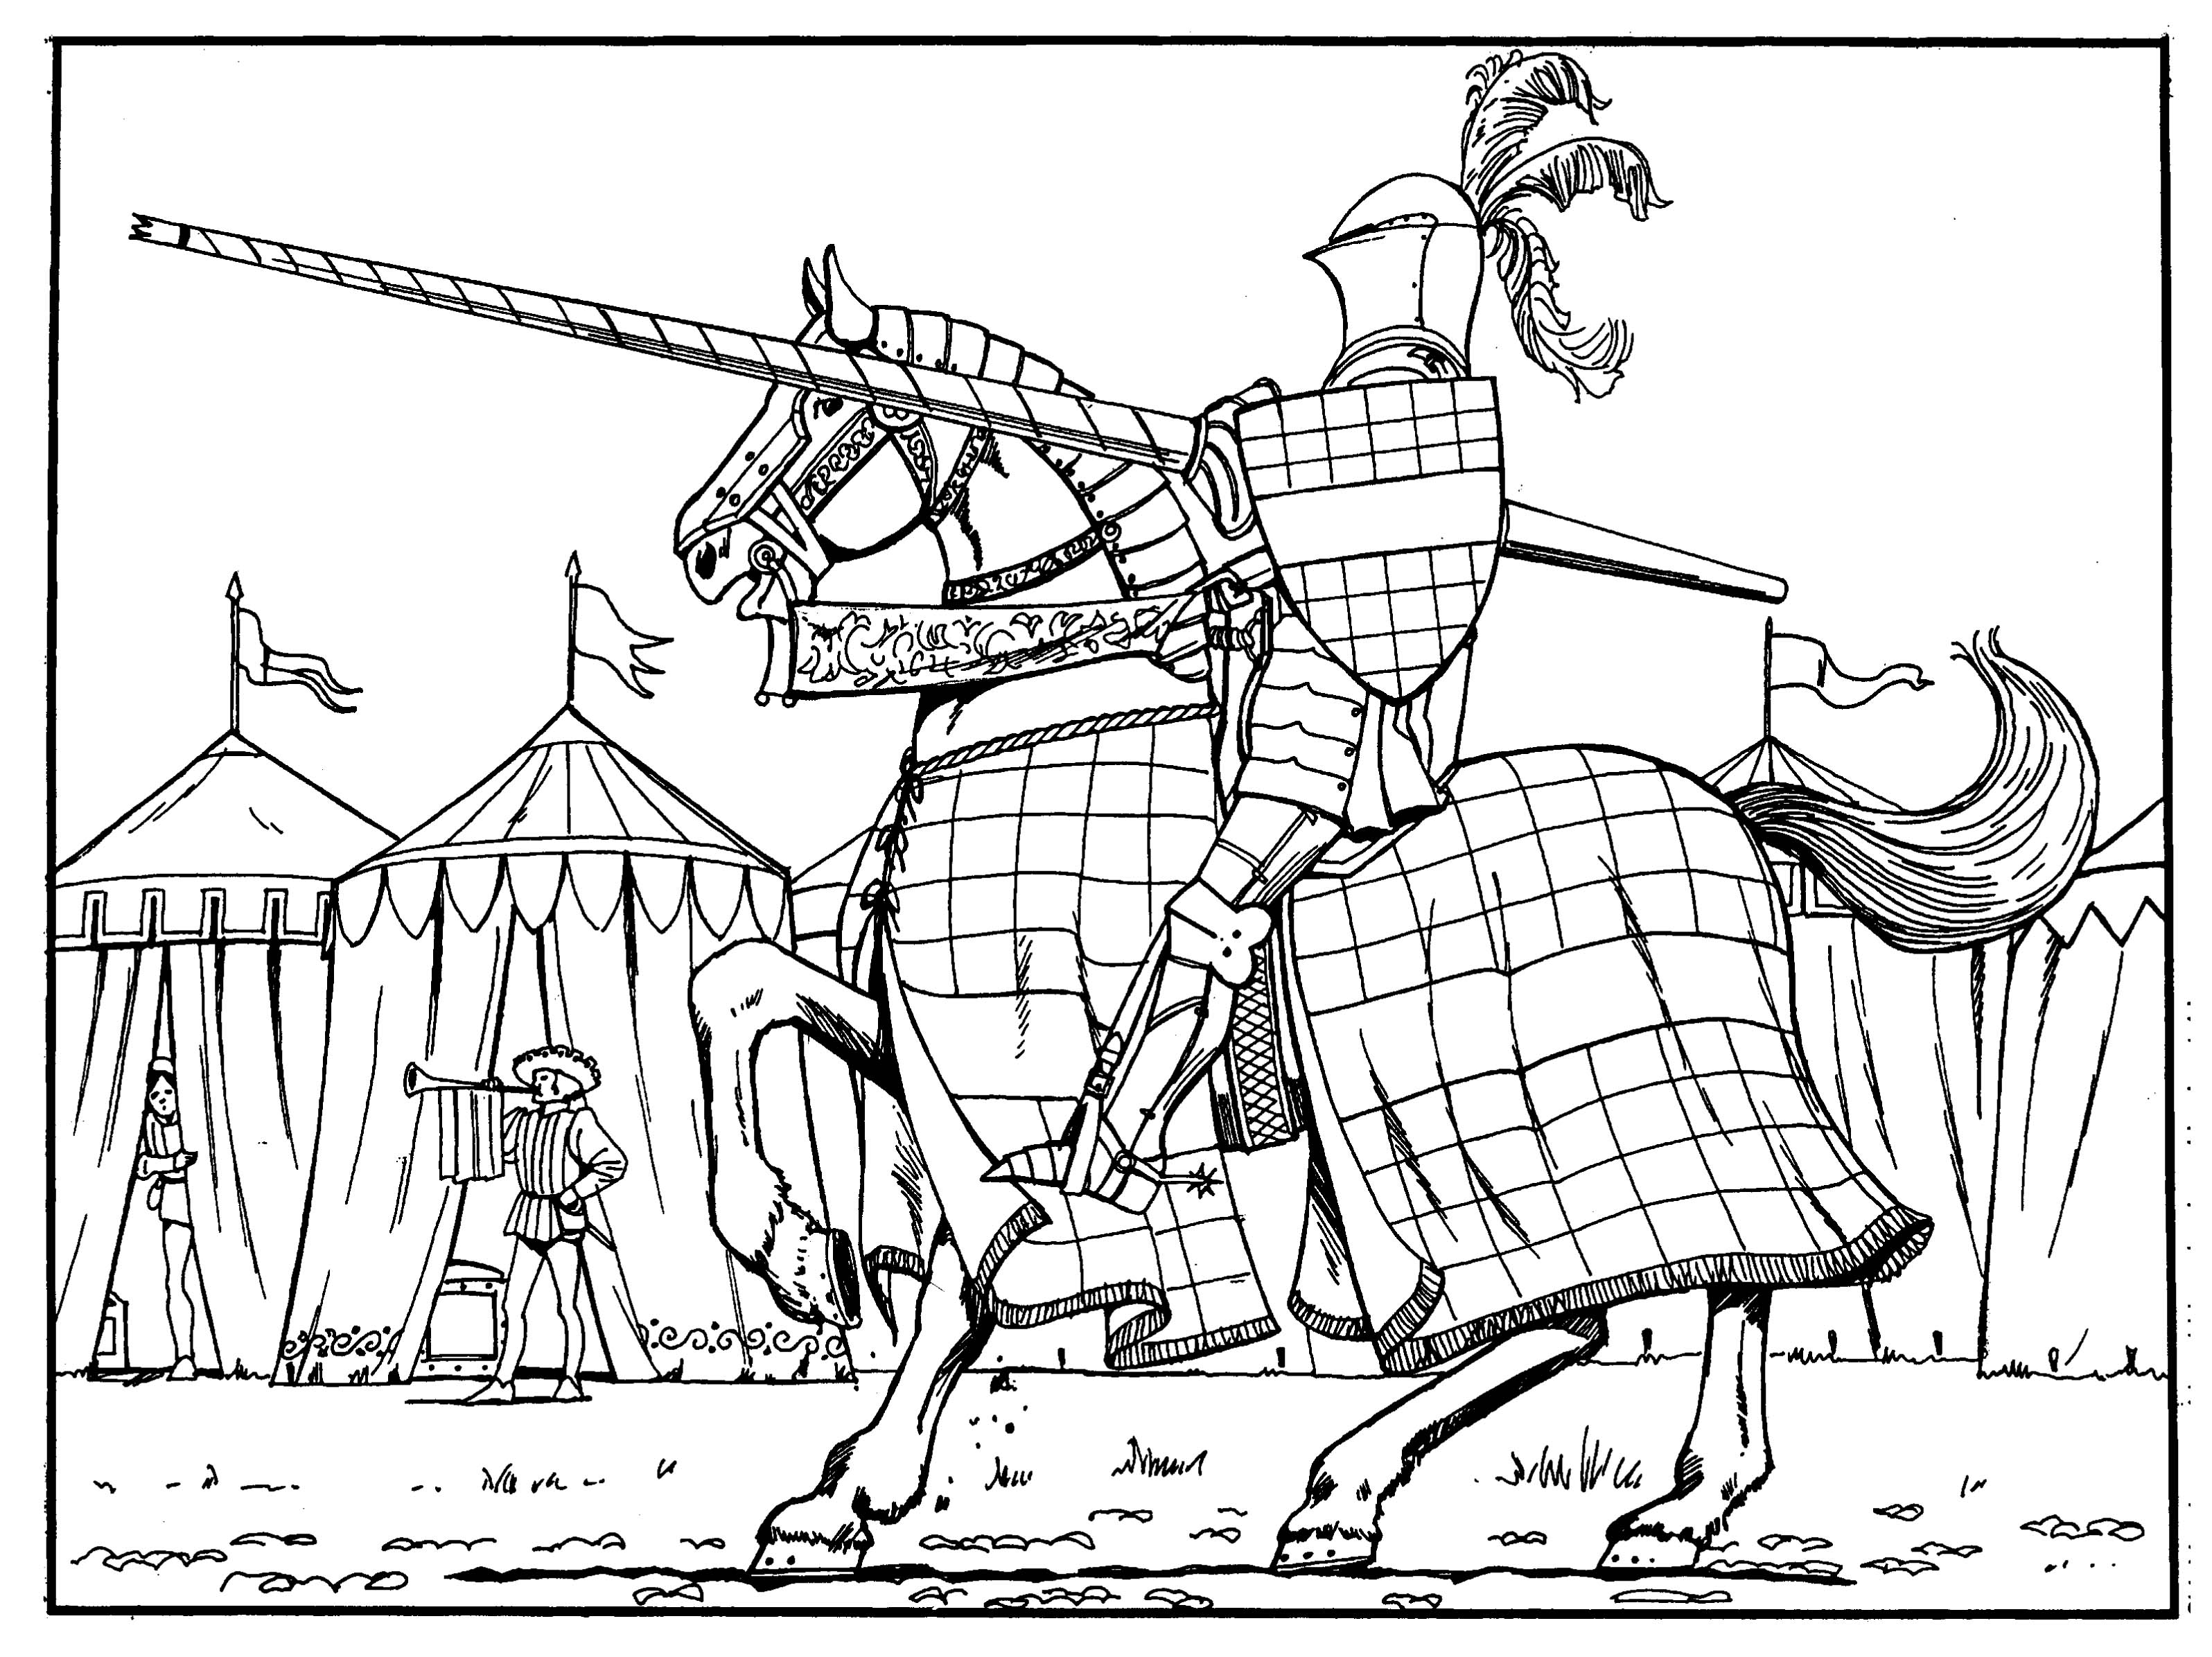 medieval colouring sheets medieval coloring pages to download and print for free colouring medieval sheets 1 1